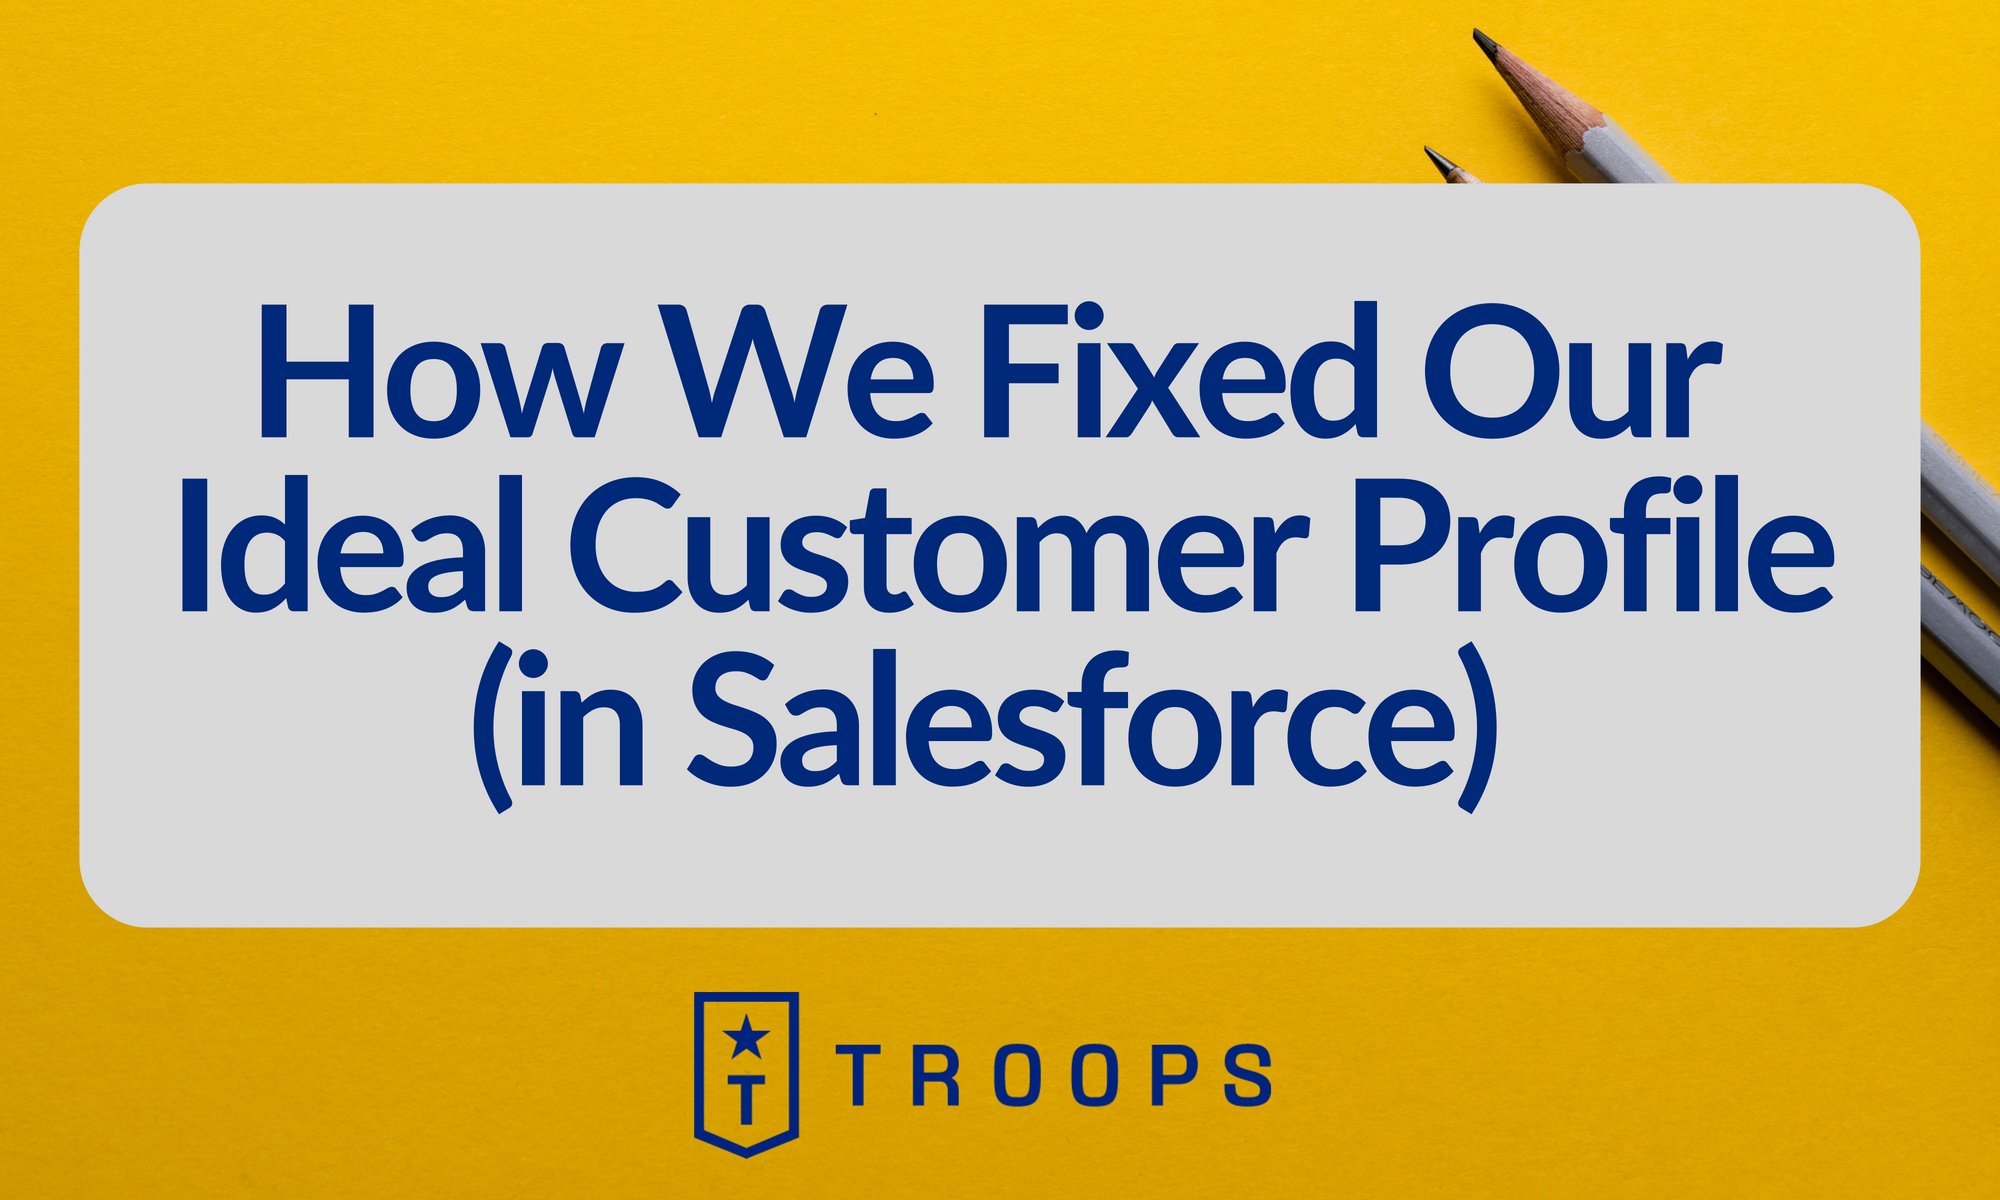 We Fixed Our Ideal Customer Profile (in Salesforce) Using This Data-Driven Process